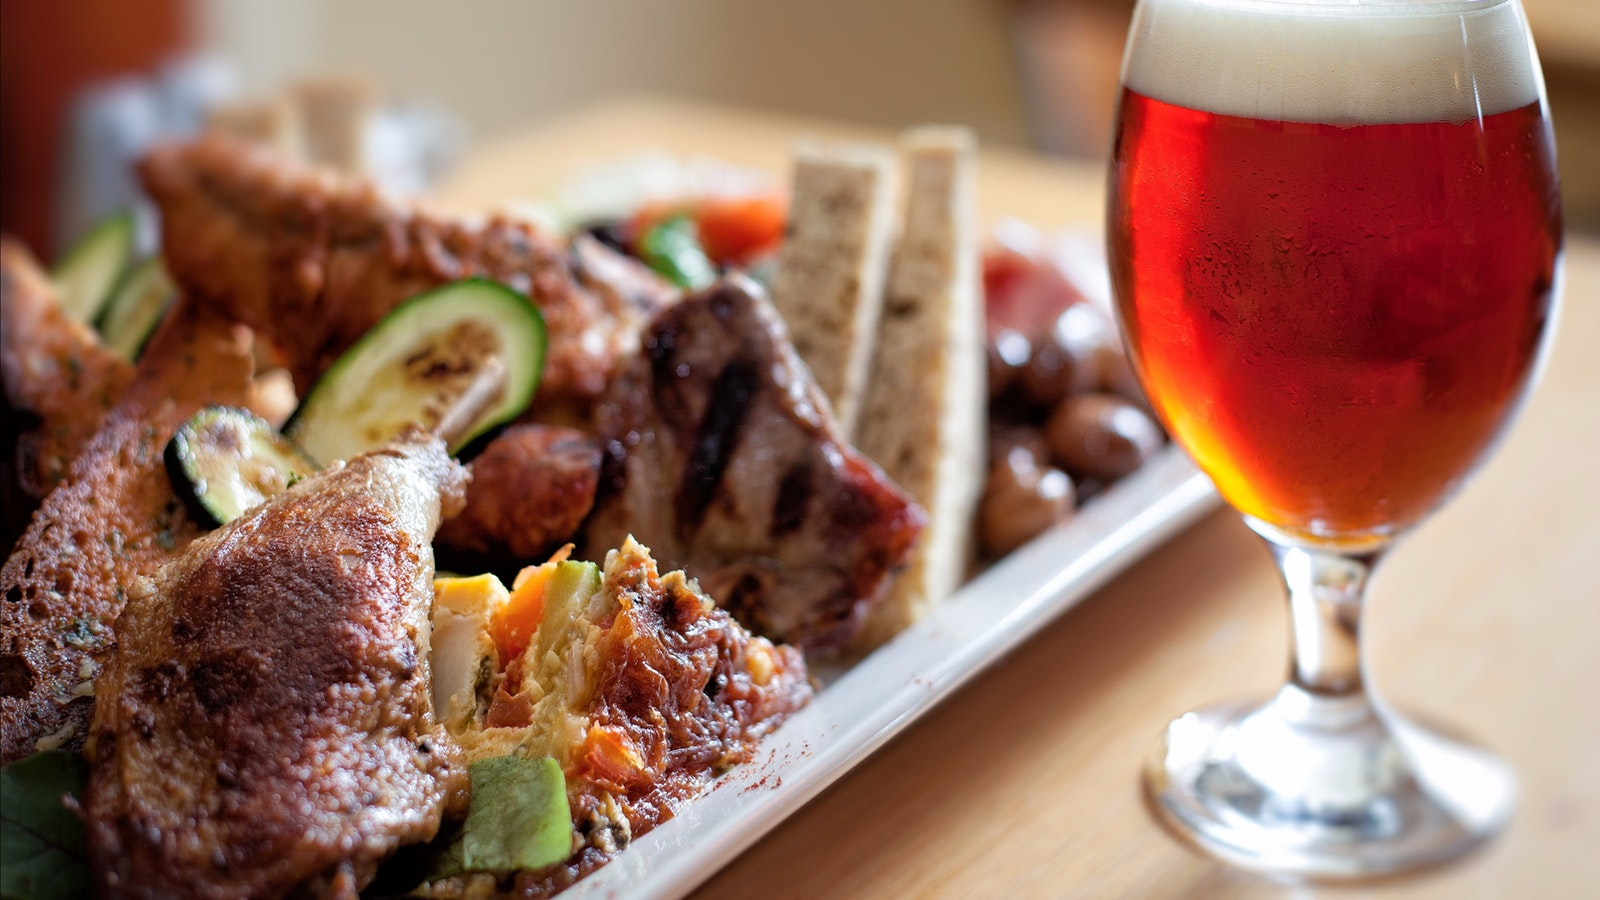 Holgate's beer and food pairing